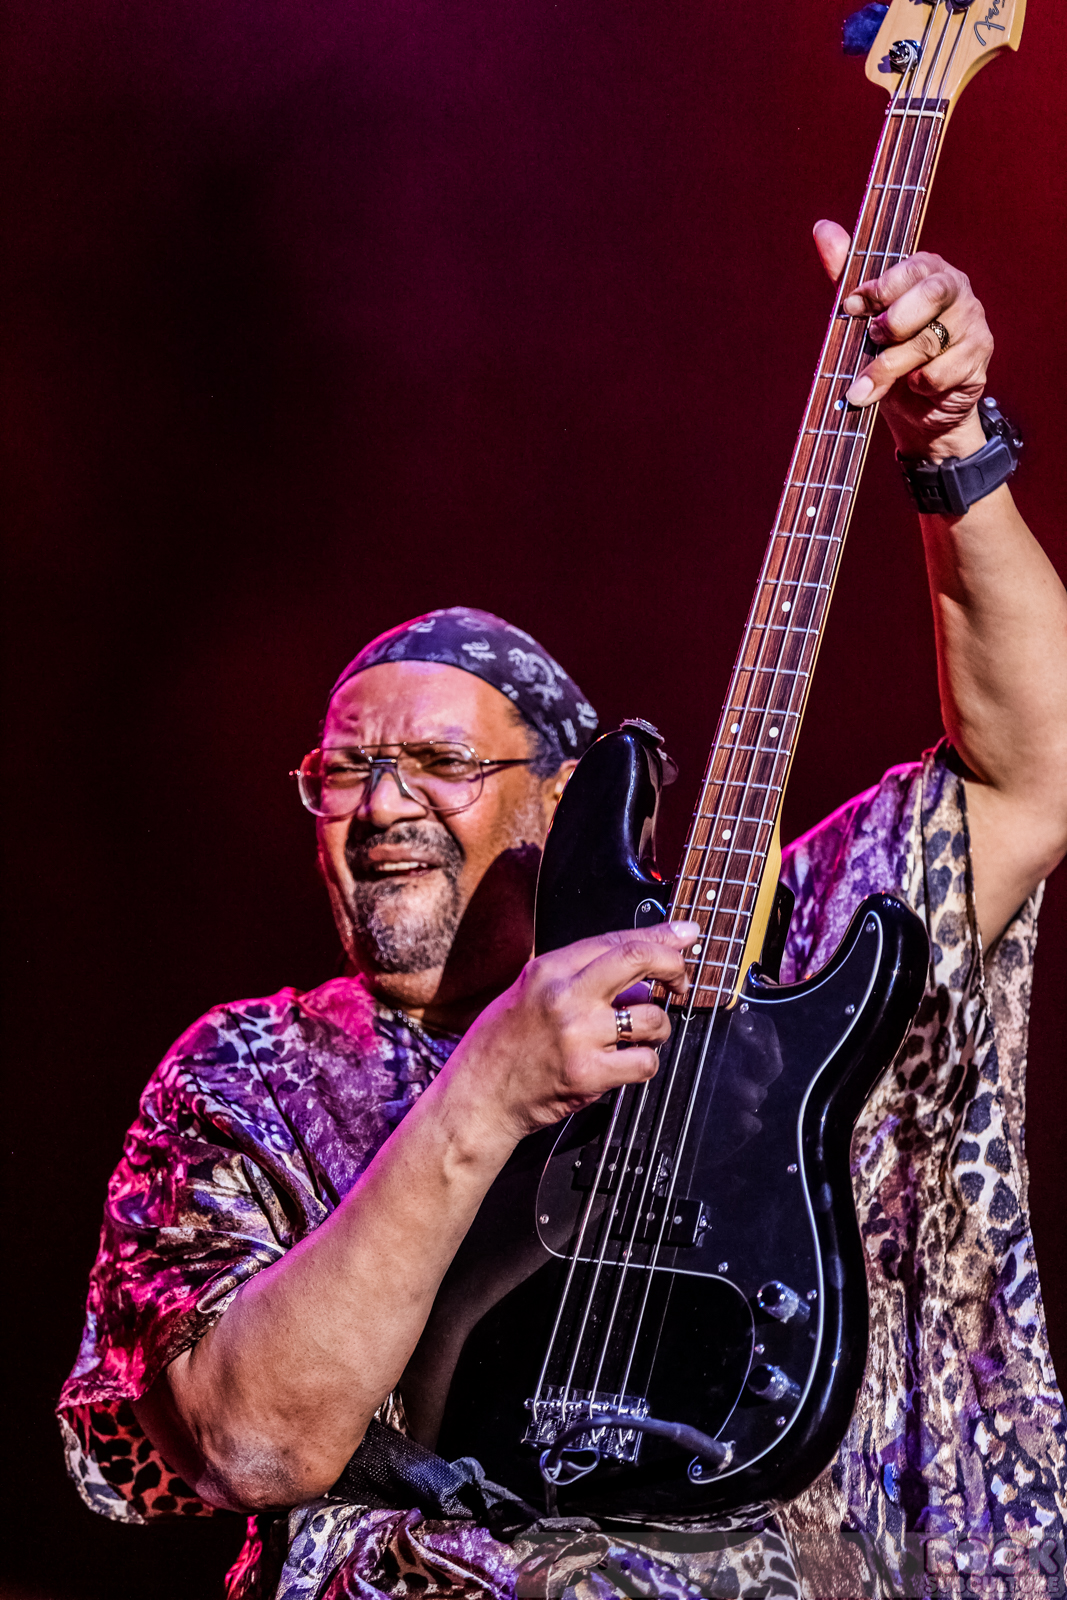 er-Thumbs-RIP-2015-The-Brothers-Johnson-Last-Concert-Photos-2013-Photography-Tribute-Memorial-19.jpg